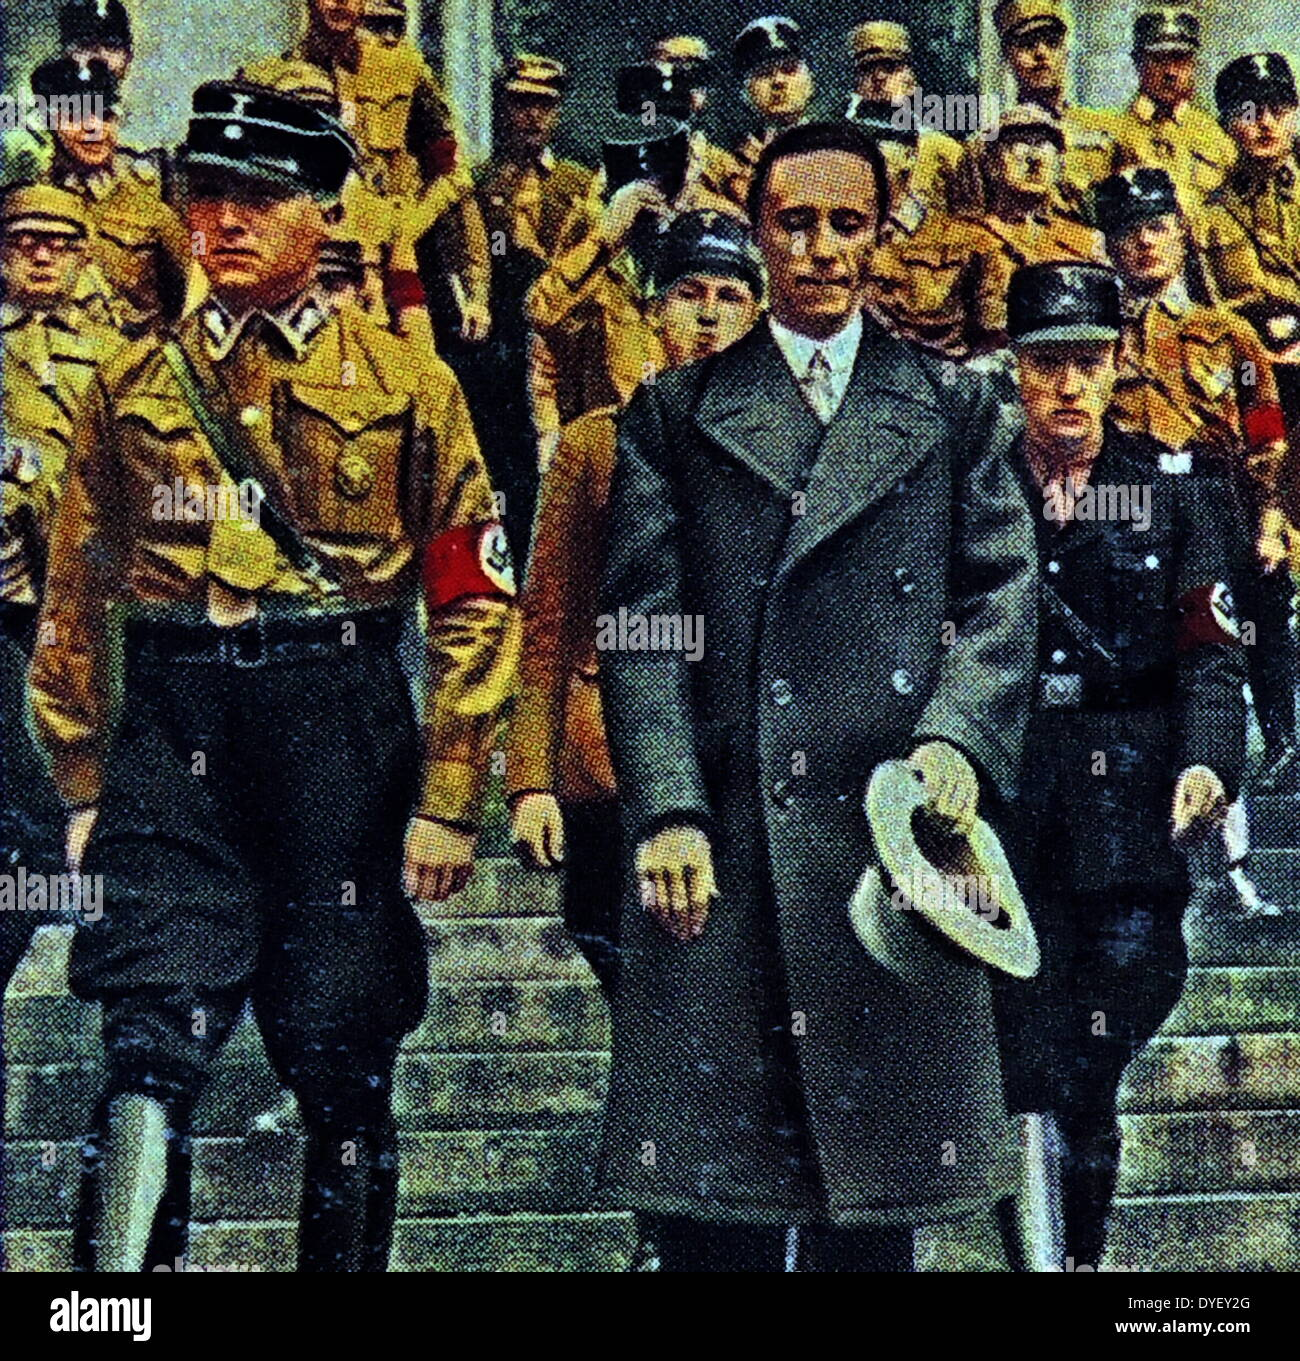 a biography and life work of paul joseph goebbels a german politician Paul joseph goebbels (often pronounced/ˈɡɜrbəlz/ in english, german: [ˈɡœbəls] 29 october 1897 – 1 may 1945) was a german politician and the reich minister of propaganda in nazi germany from 1933 to 1945.